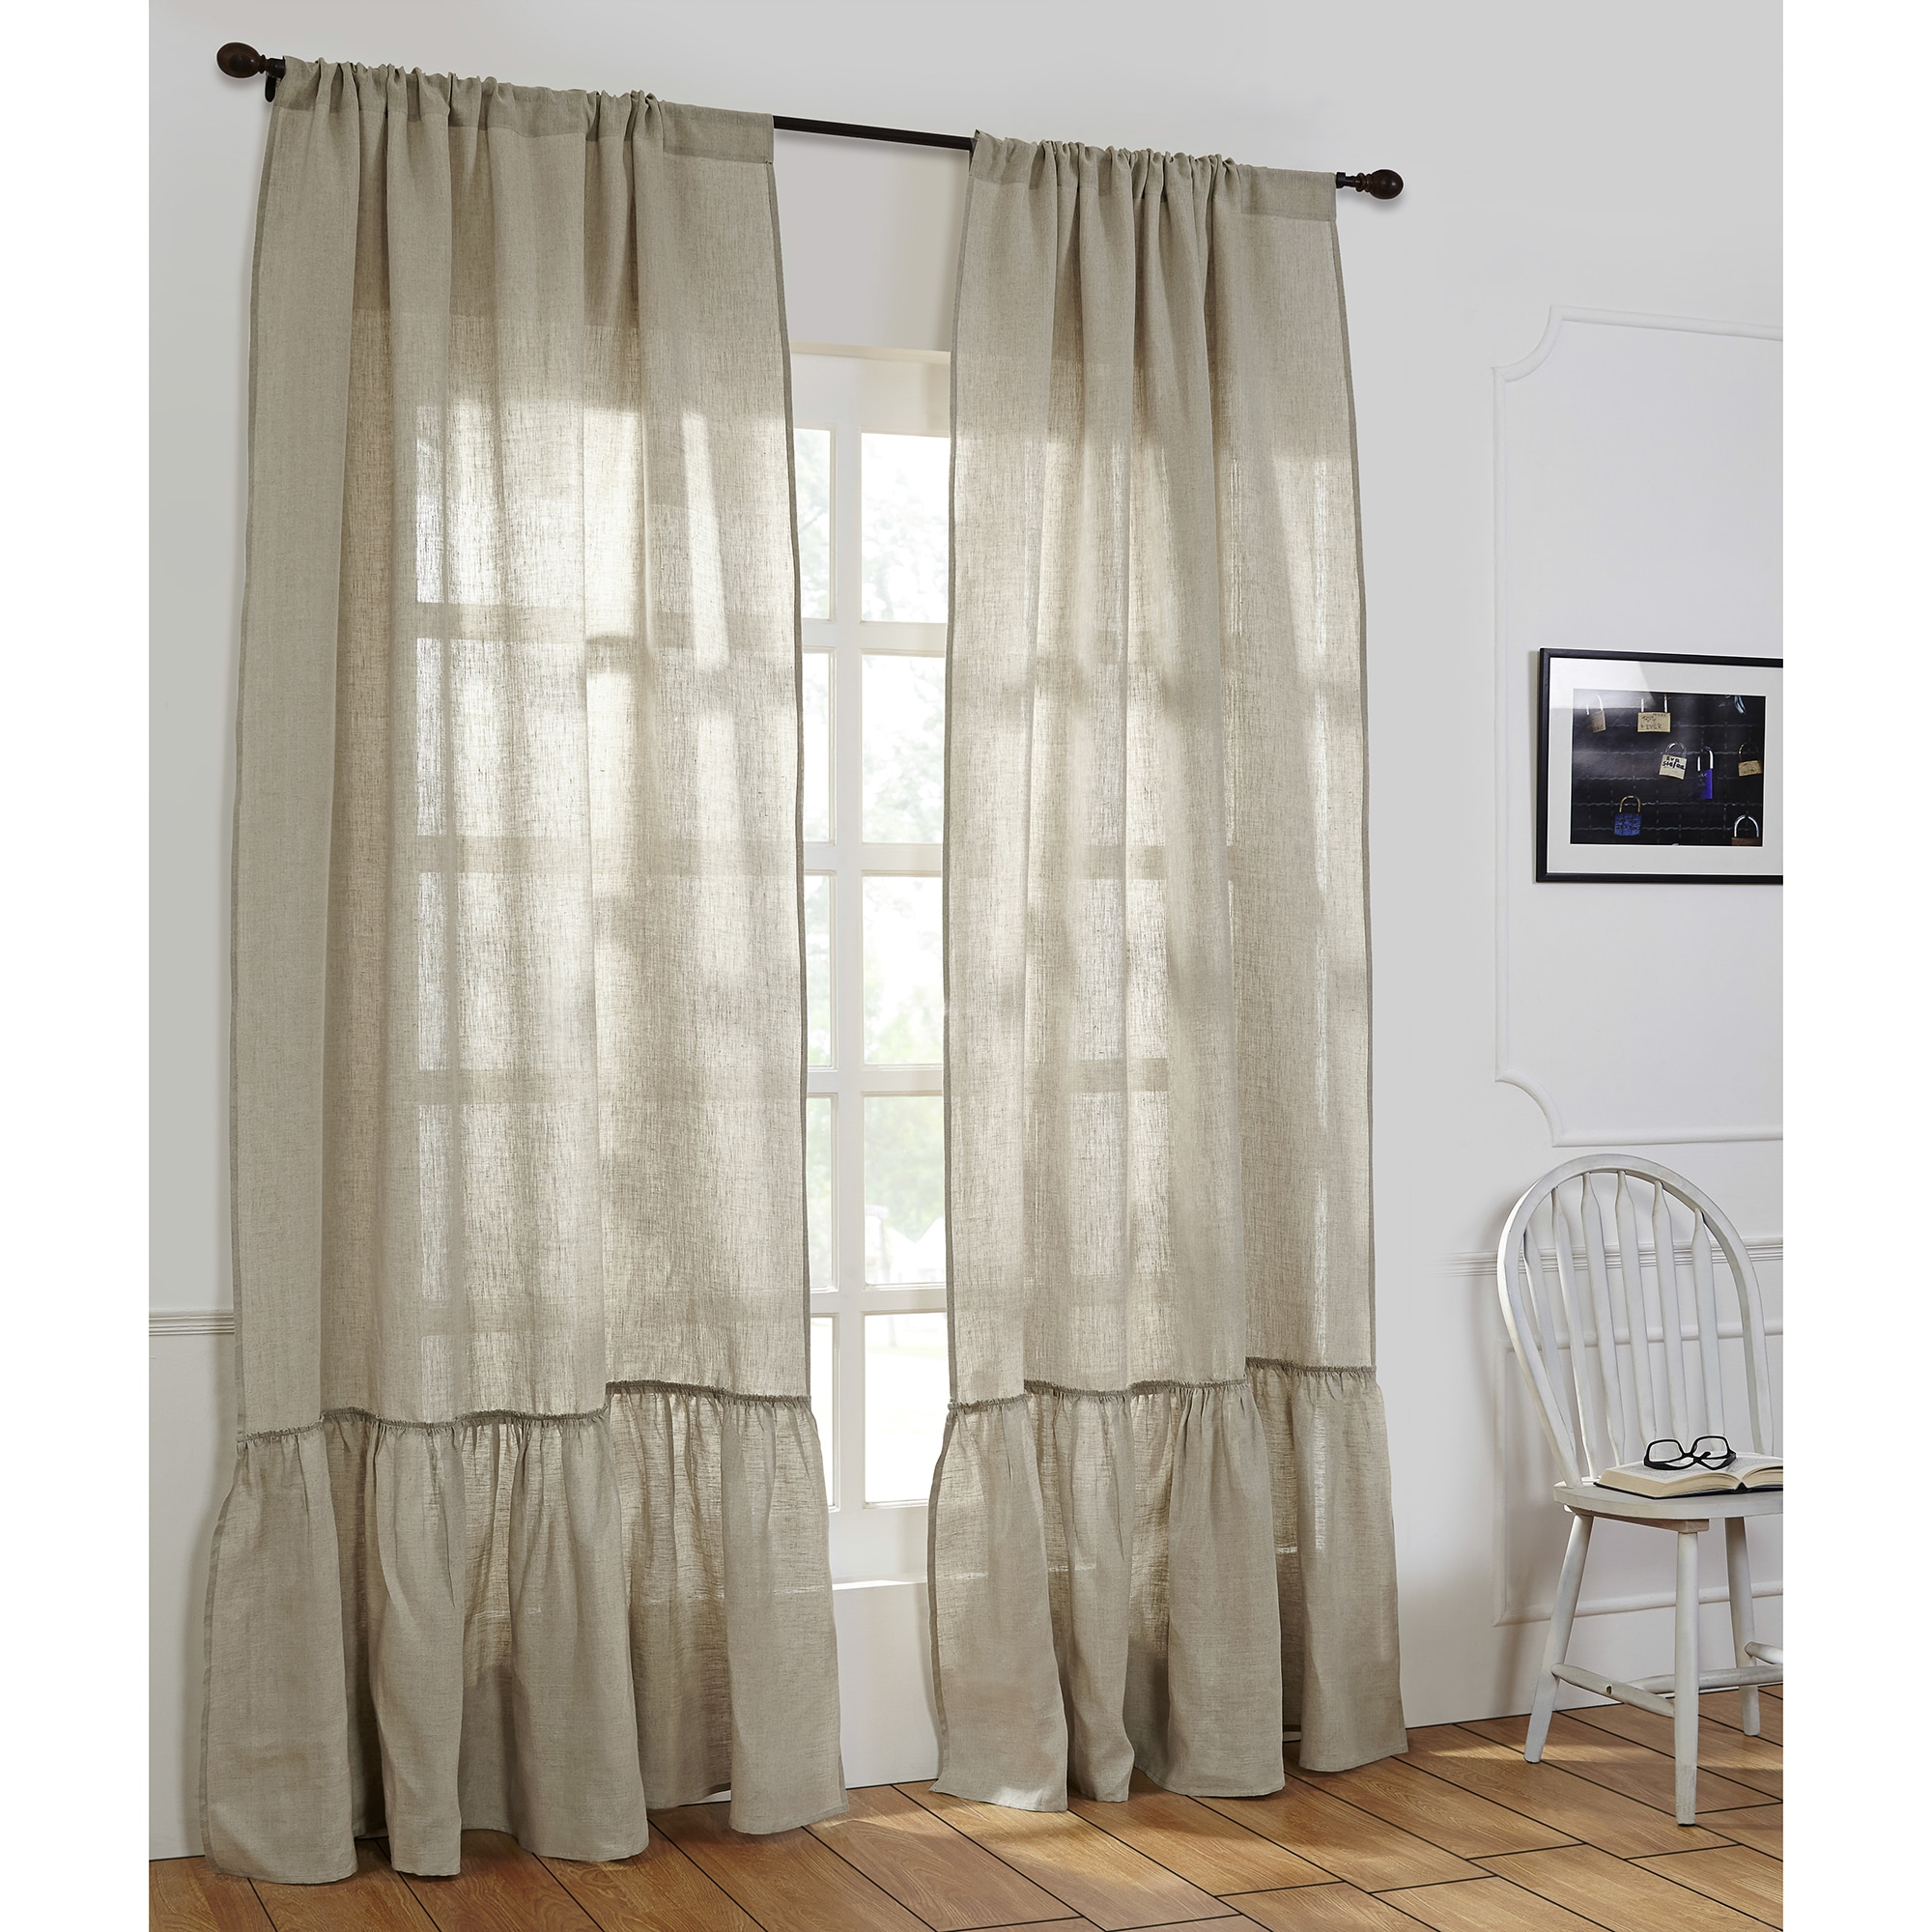 Ruffle Curtain Panel Camille Linen Ruffled Window Curtain Panel Single